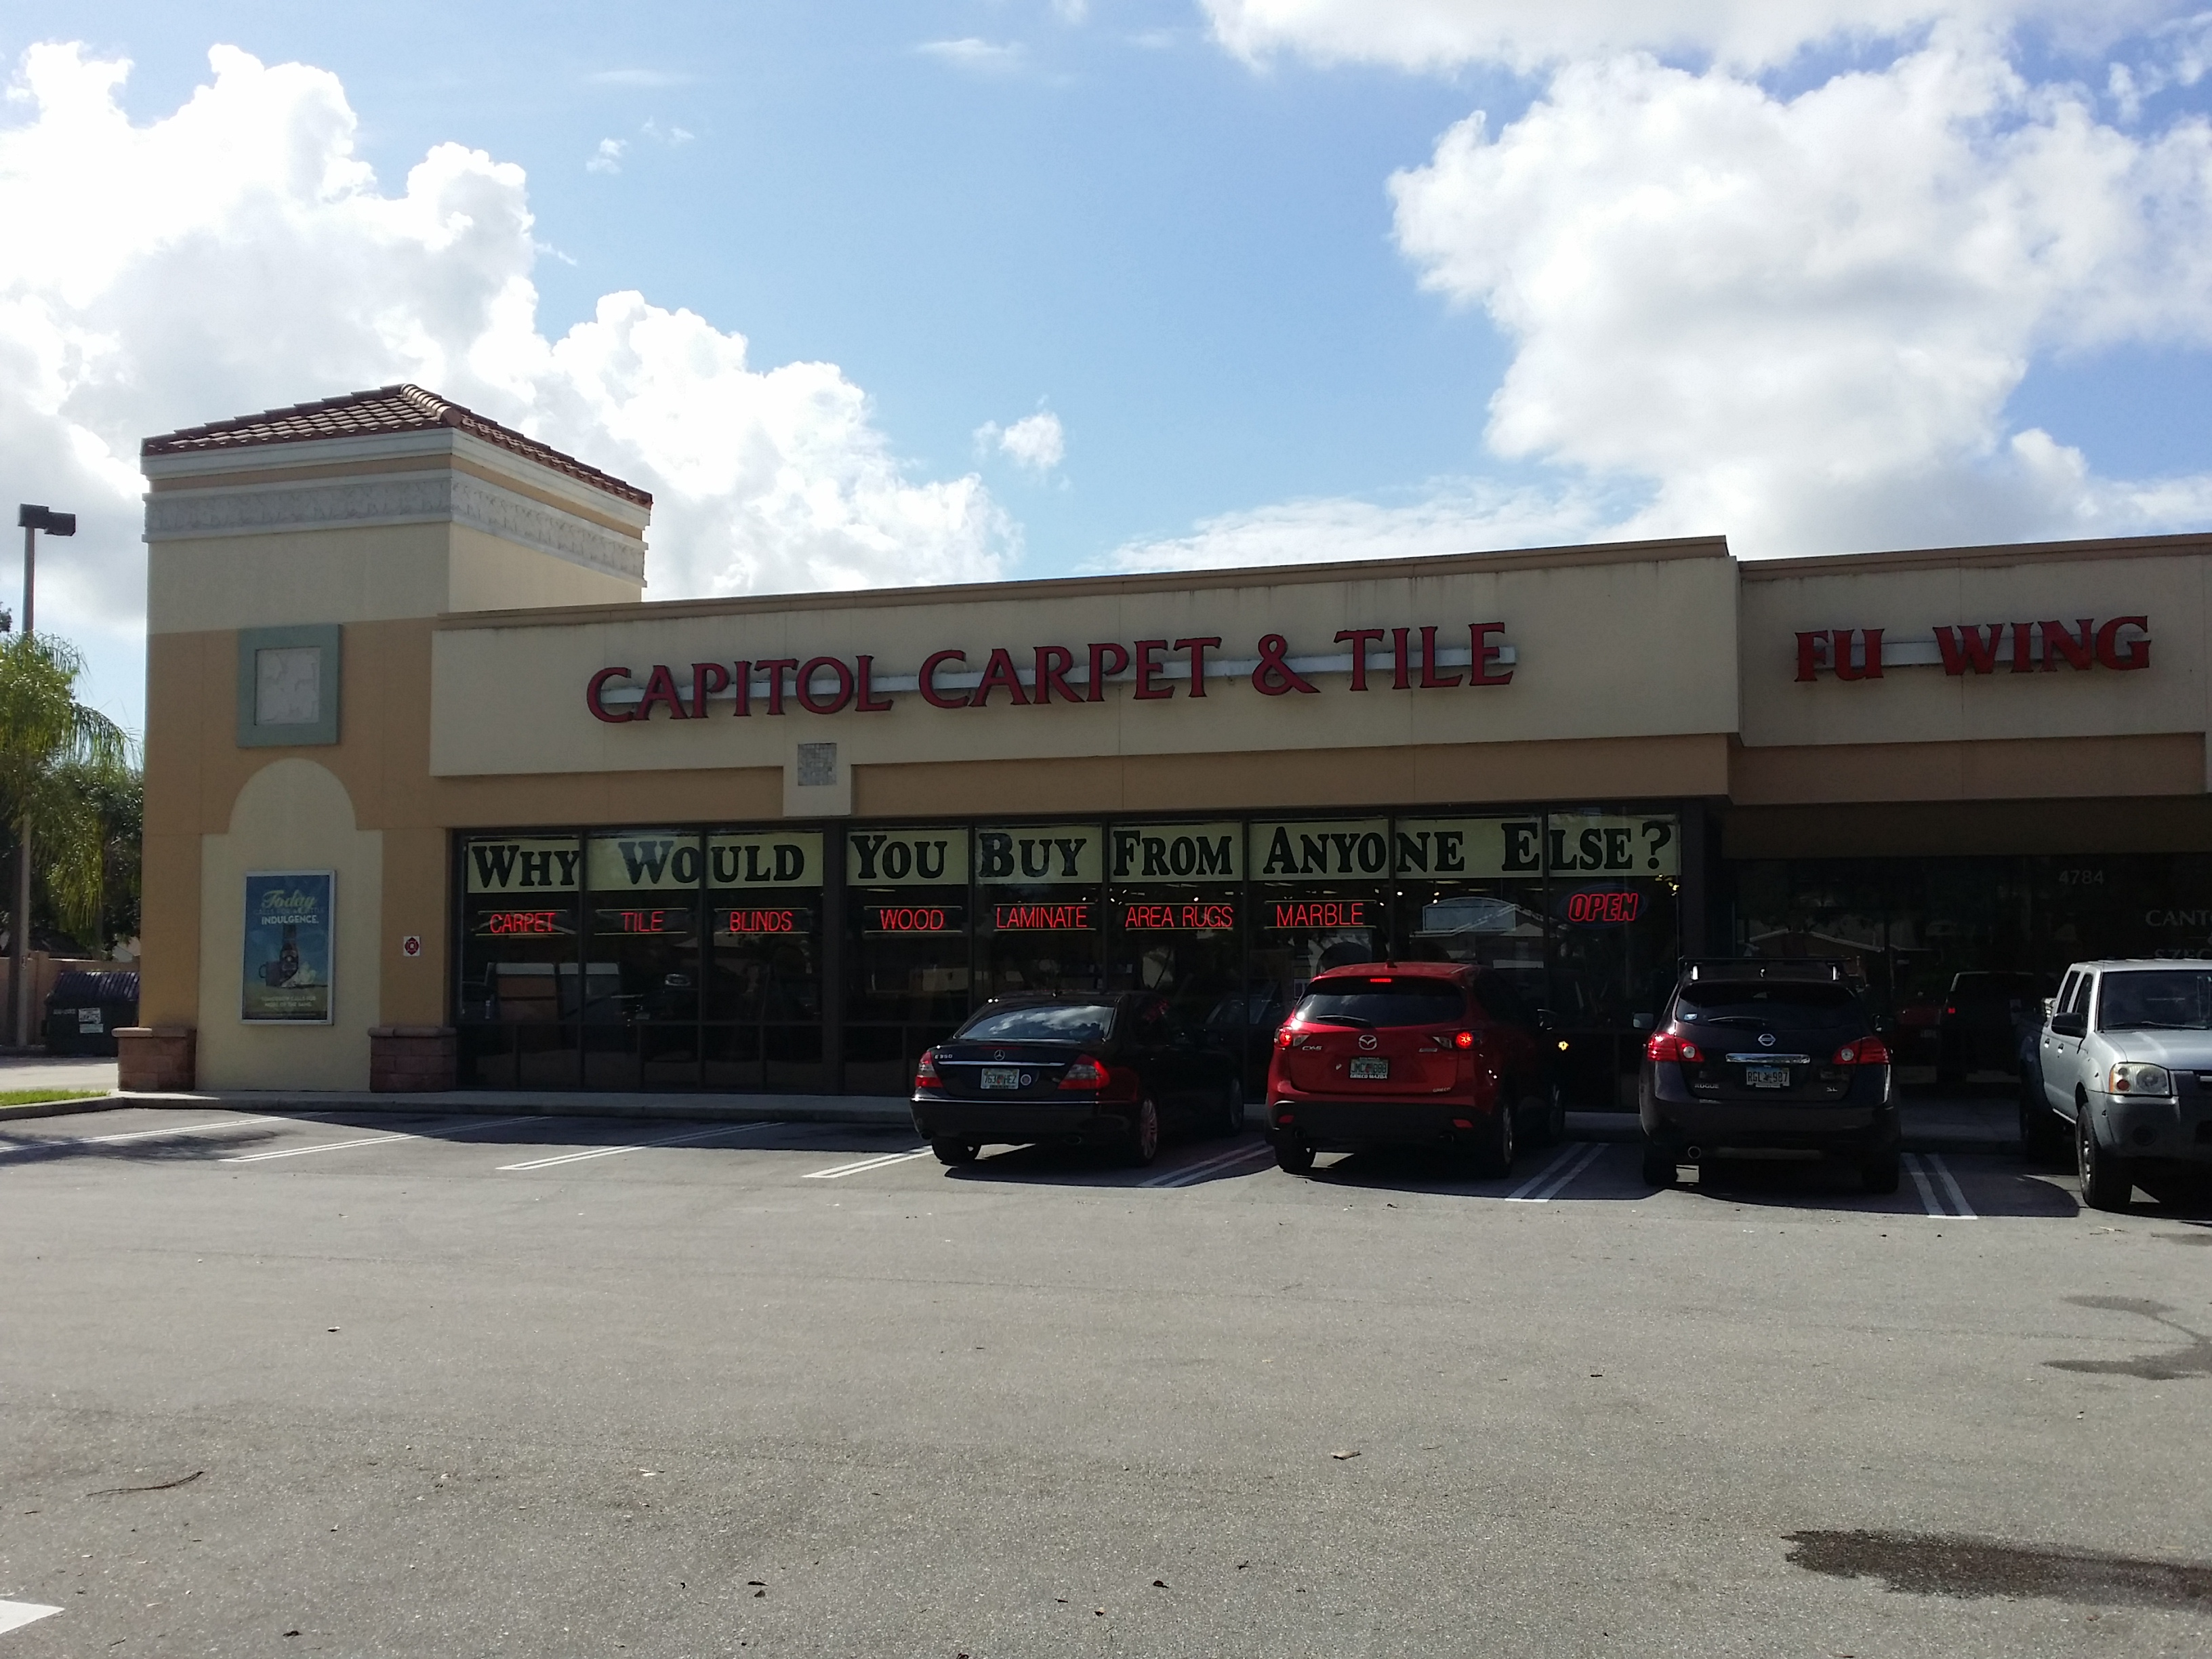 Capitol Carpet & Tile and Window Fashions store front